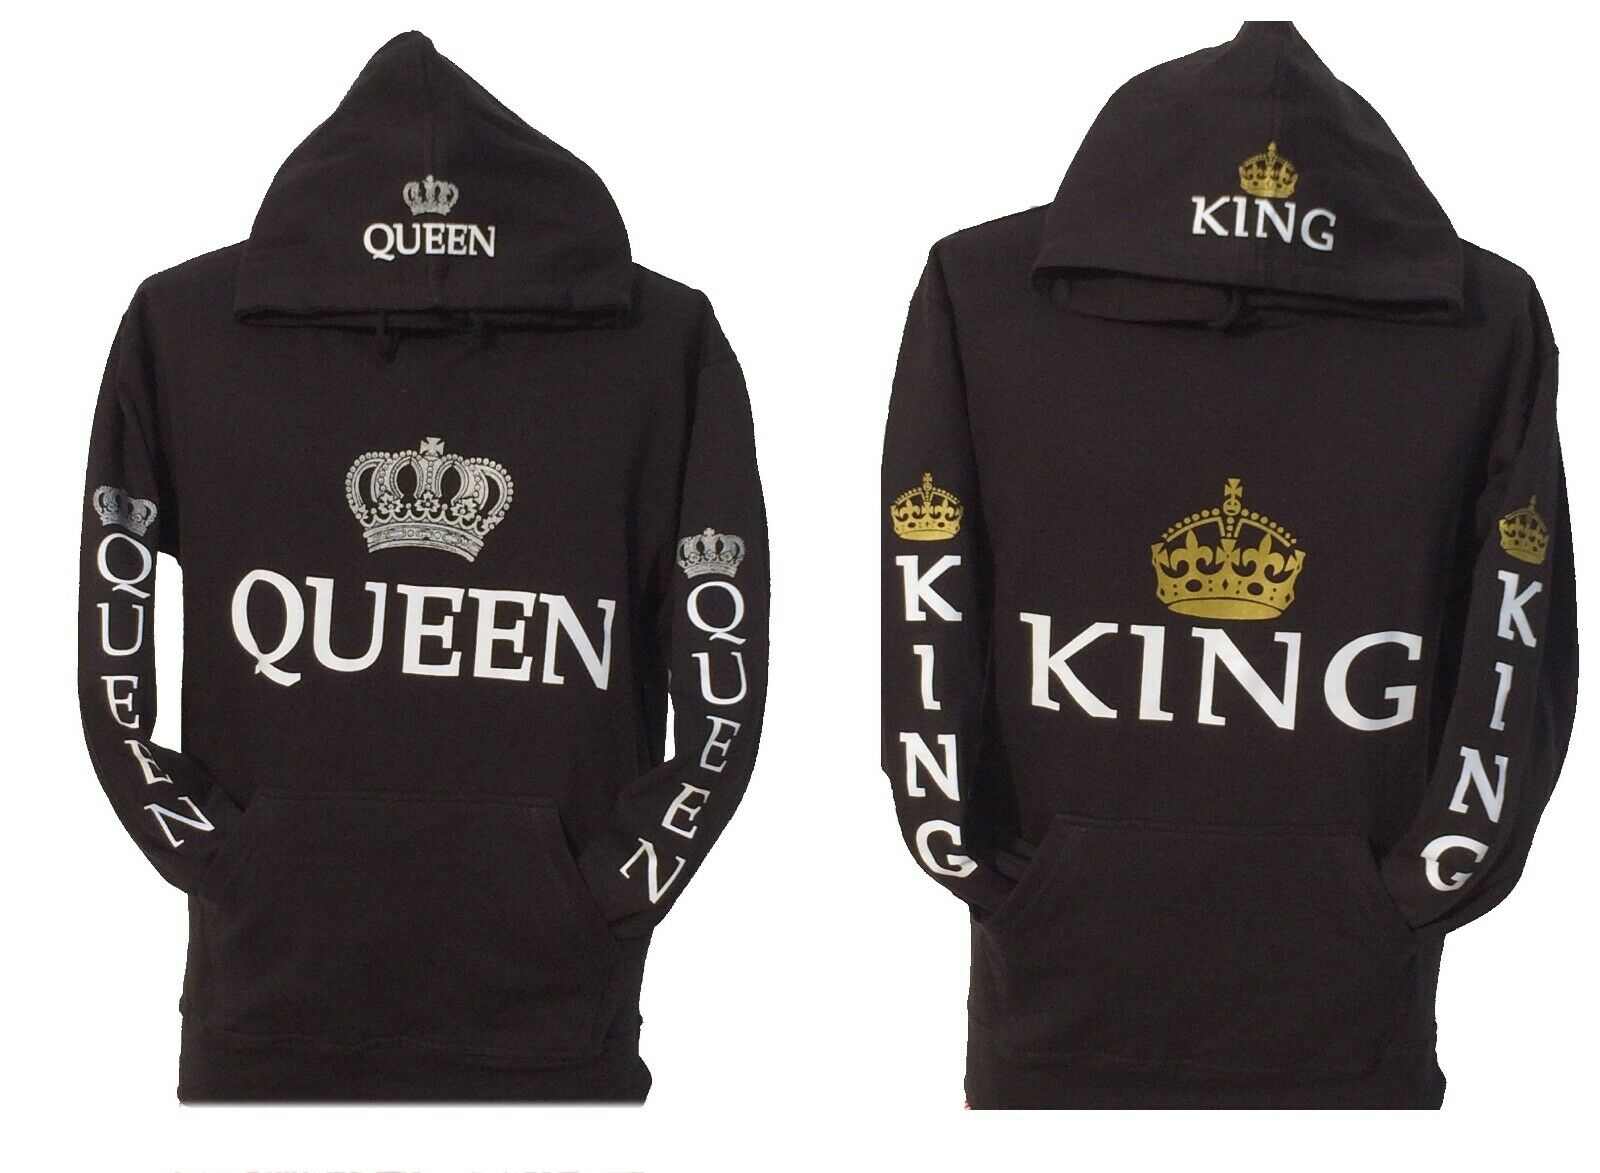 King and queen hoodies hooded sweatshirt adults+kids